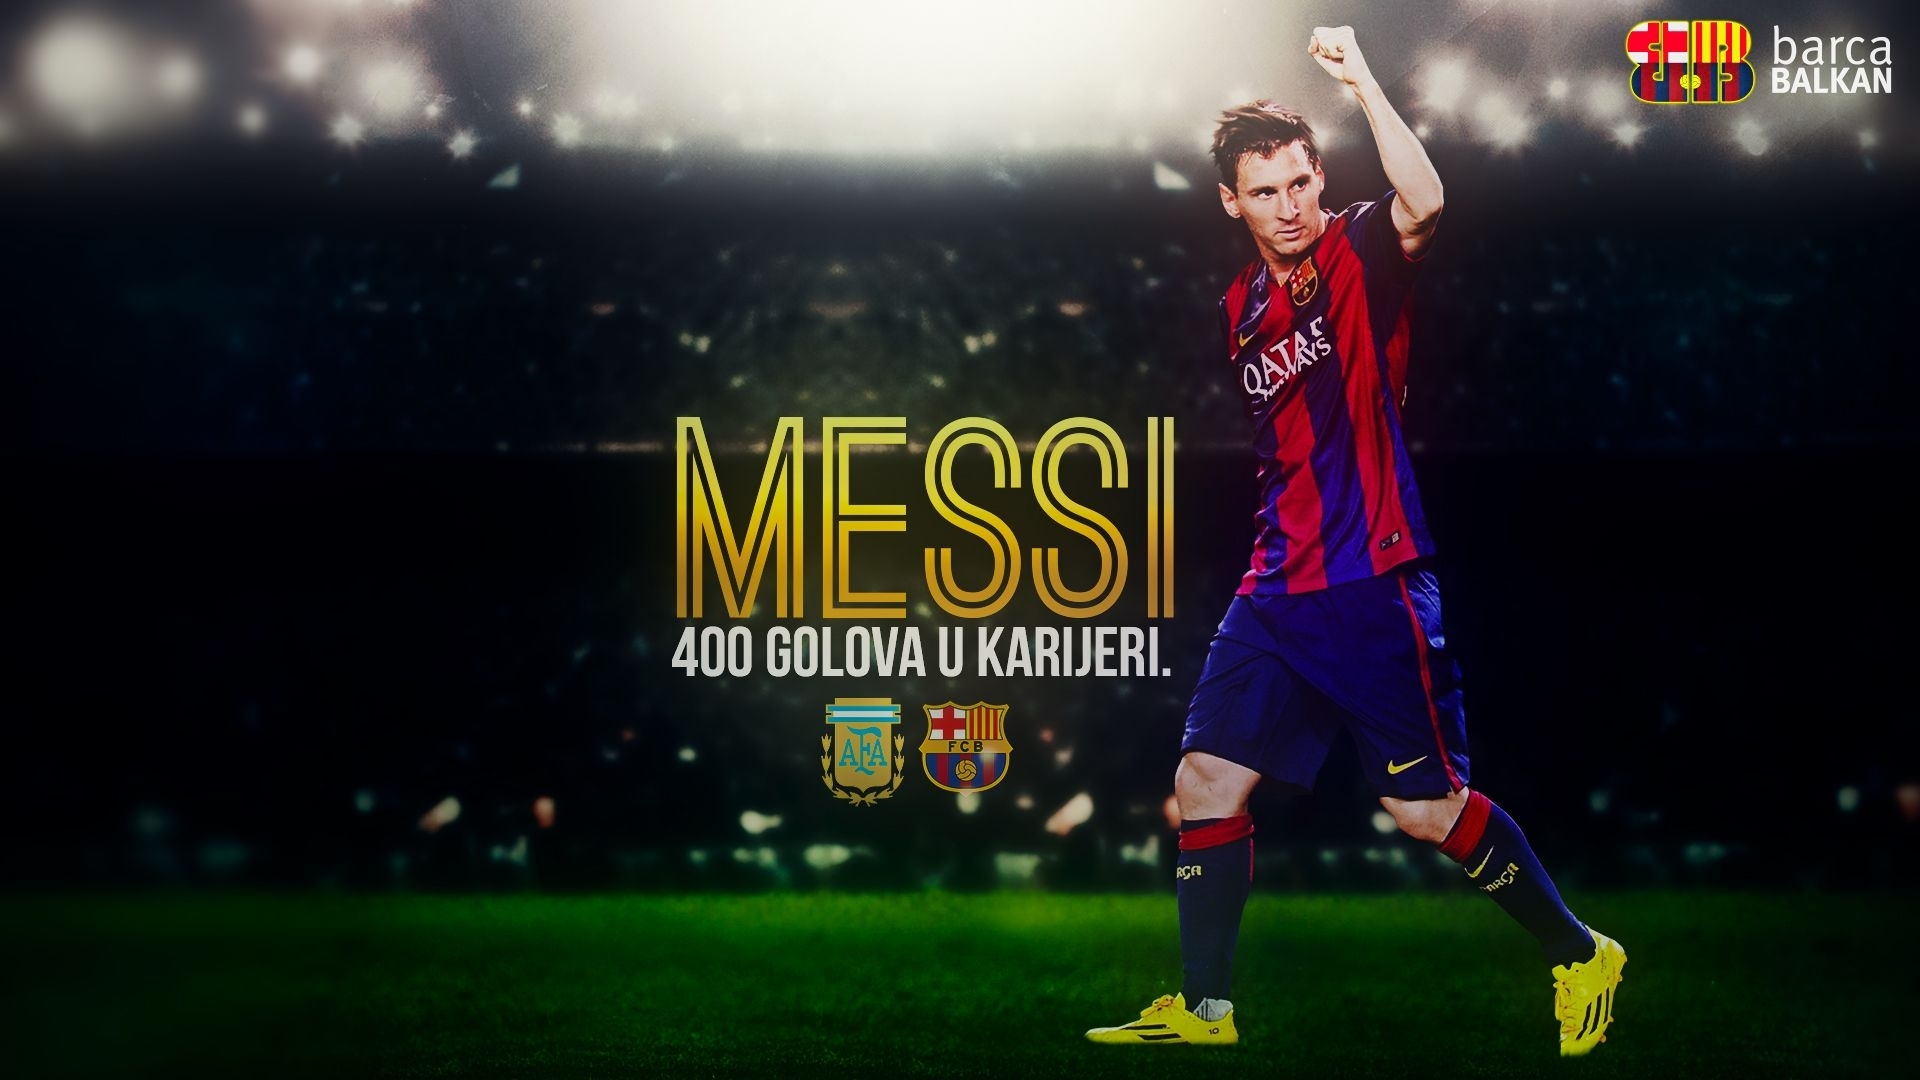 lionel messi wallpapers hd p free download for desktop 1600×1065